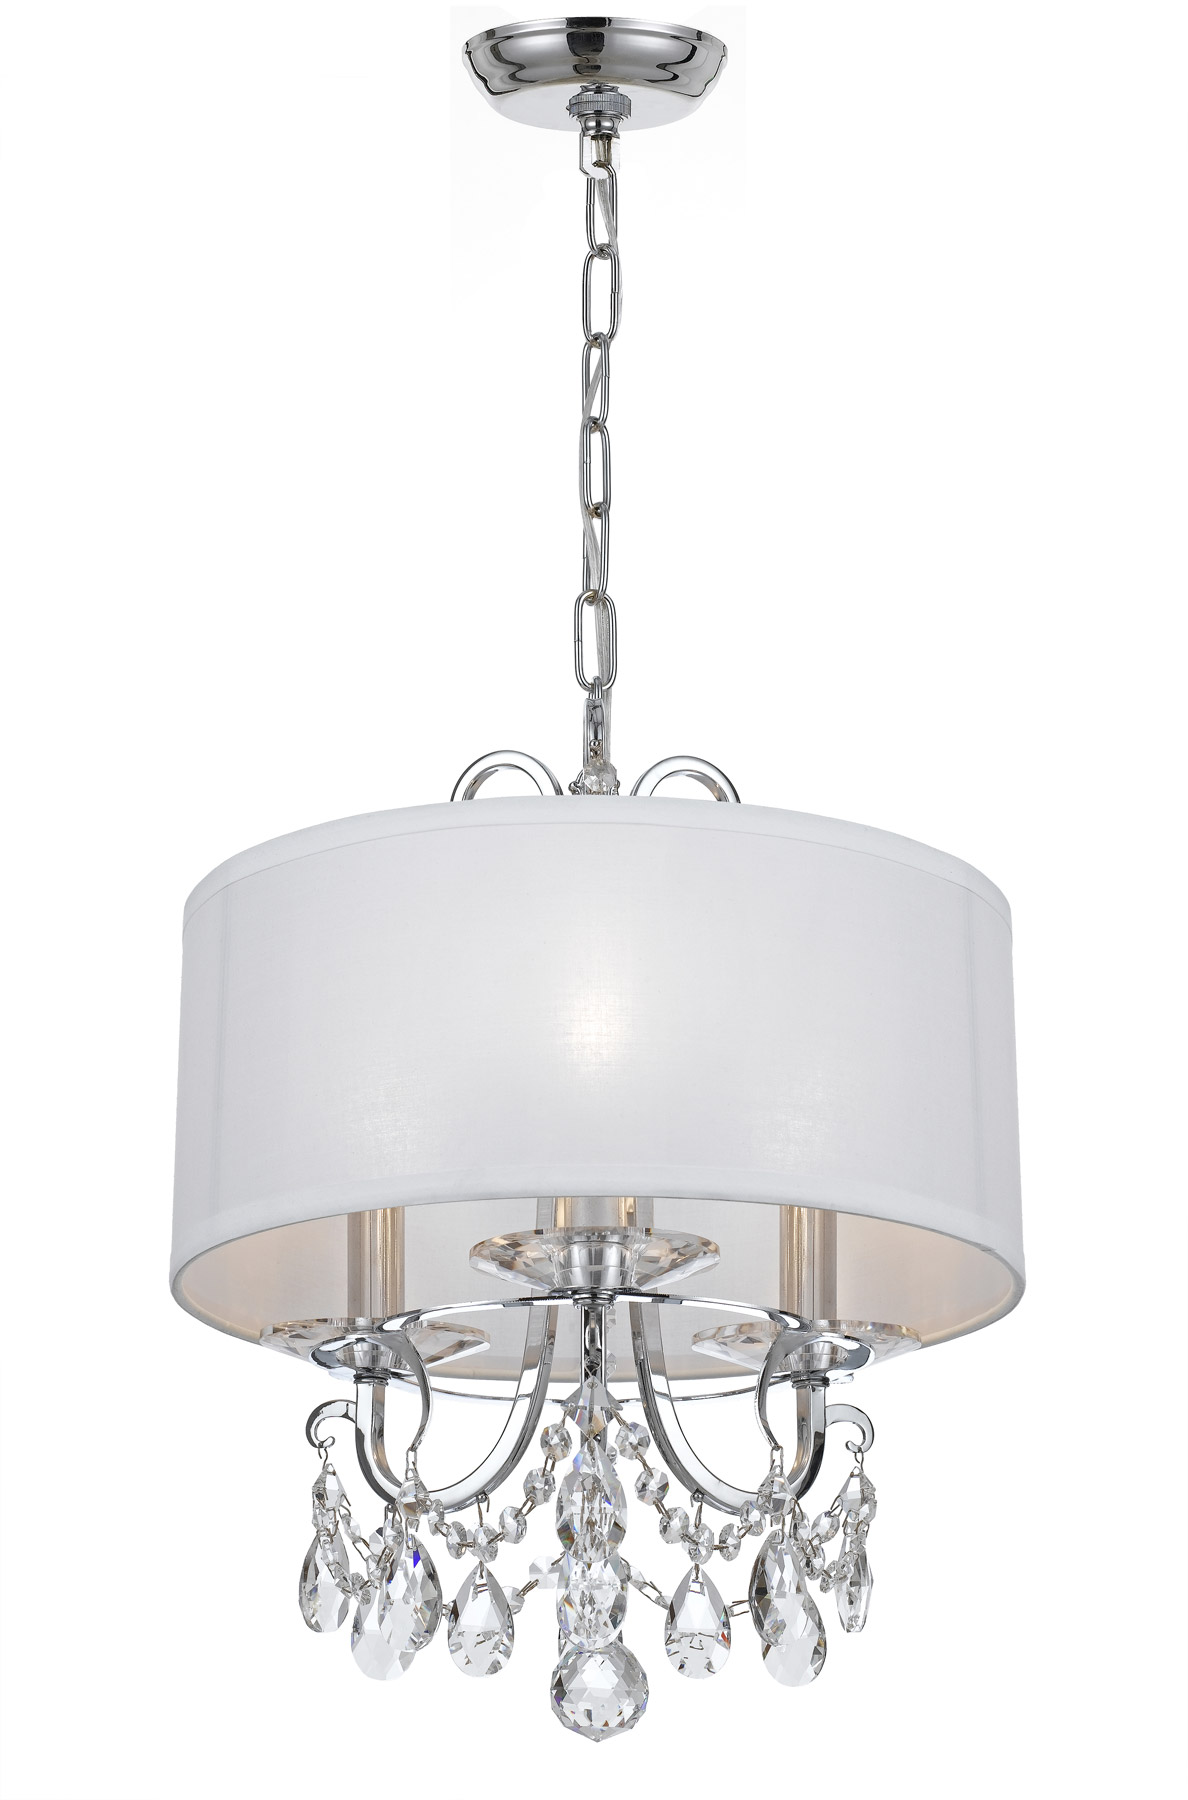 6623 ch cl mwp othello 3 light clear crystal polished chrome mini crystorama 6623 ch cl mwp othello 3 light clear crystal polished chrome mini chandelier arubaitofo Image collections